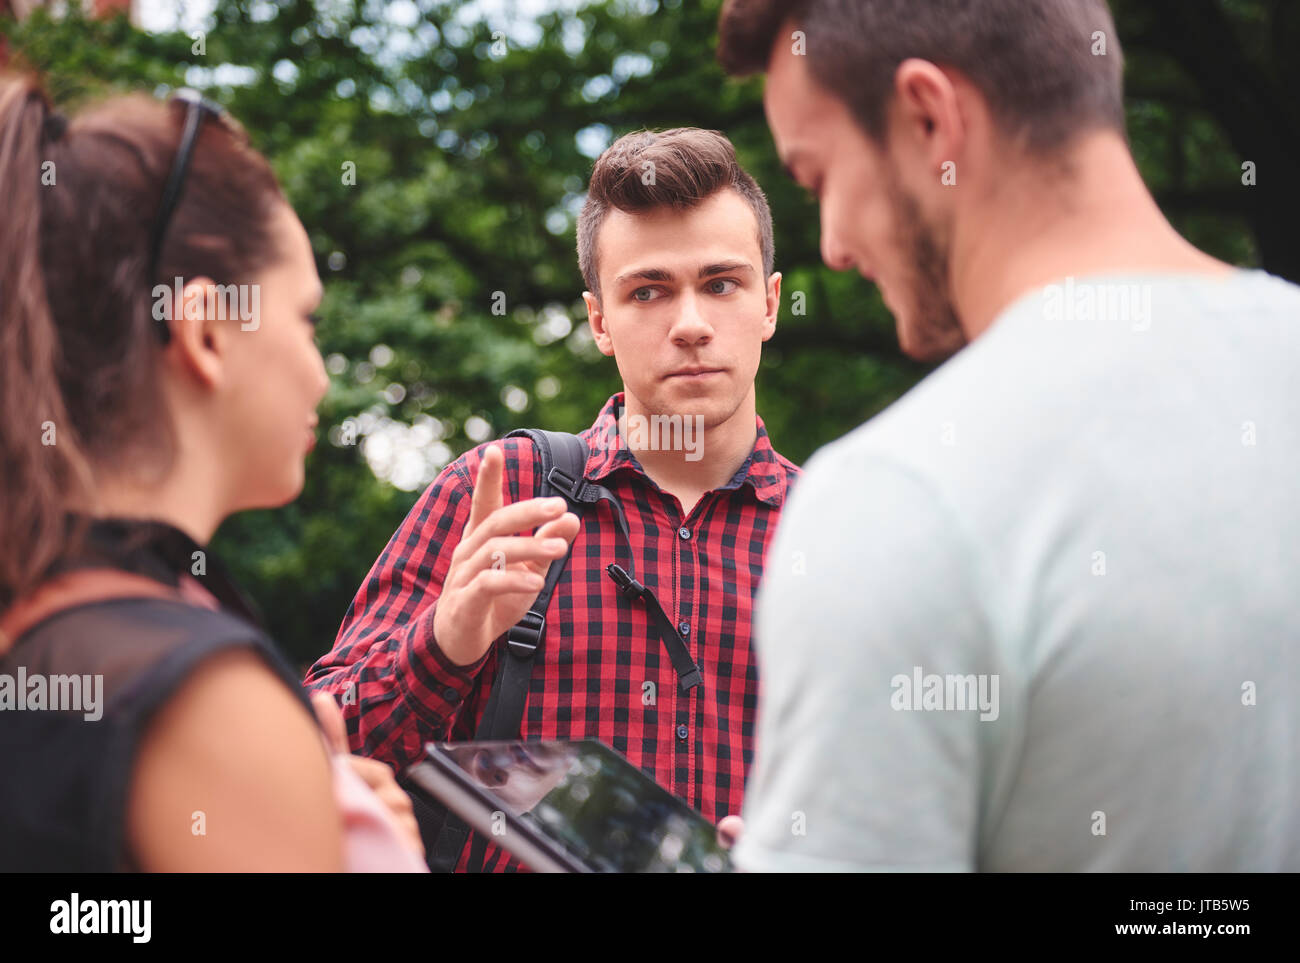 Angry man talking seriously outdoors - Stock Image